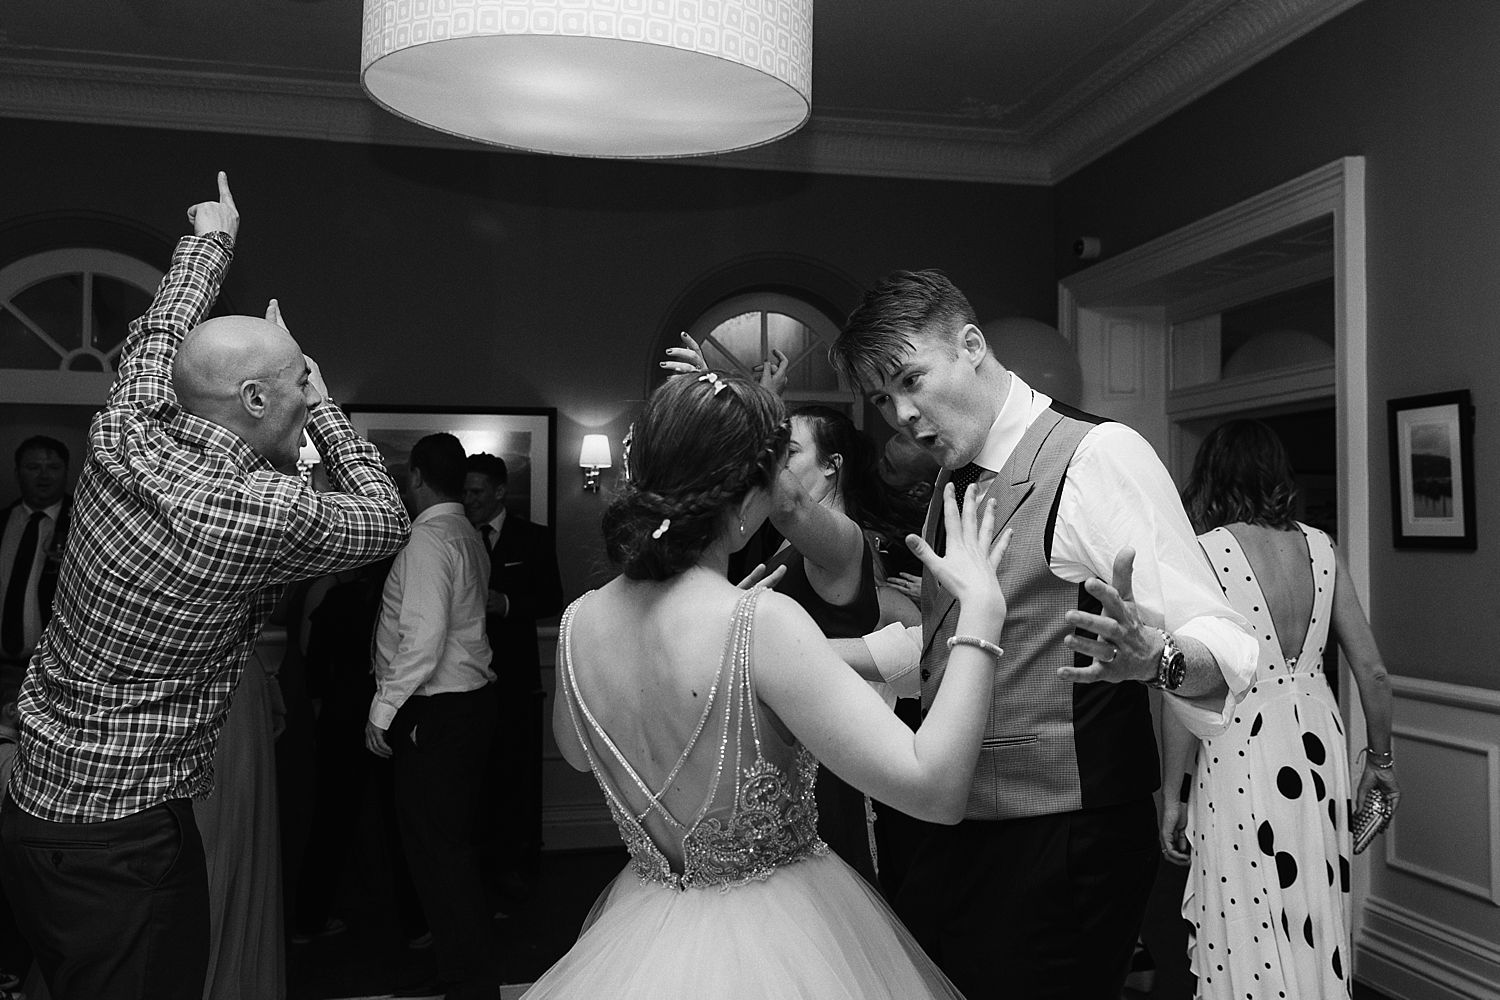 Bride and groom dancing at evening reception at Lake District wedding venue, Belsfield Hotel